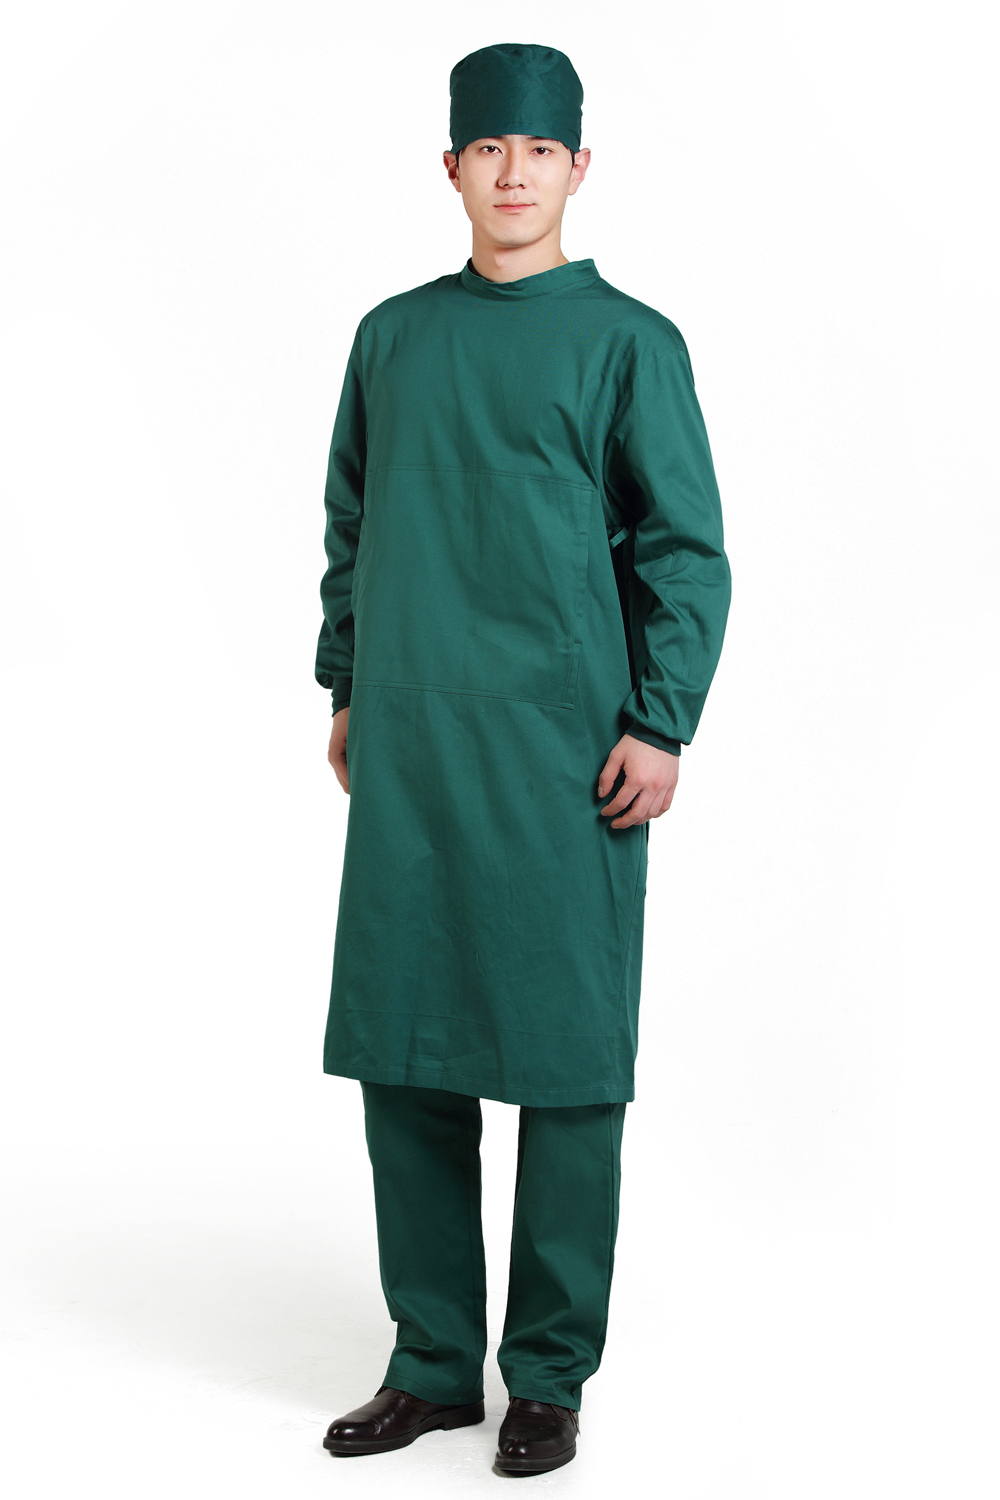 2015 OEM hospital uniforms men surgical gown doctor uniform hospital ...